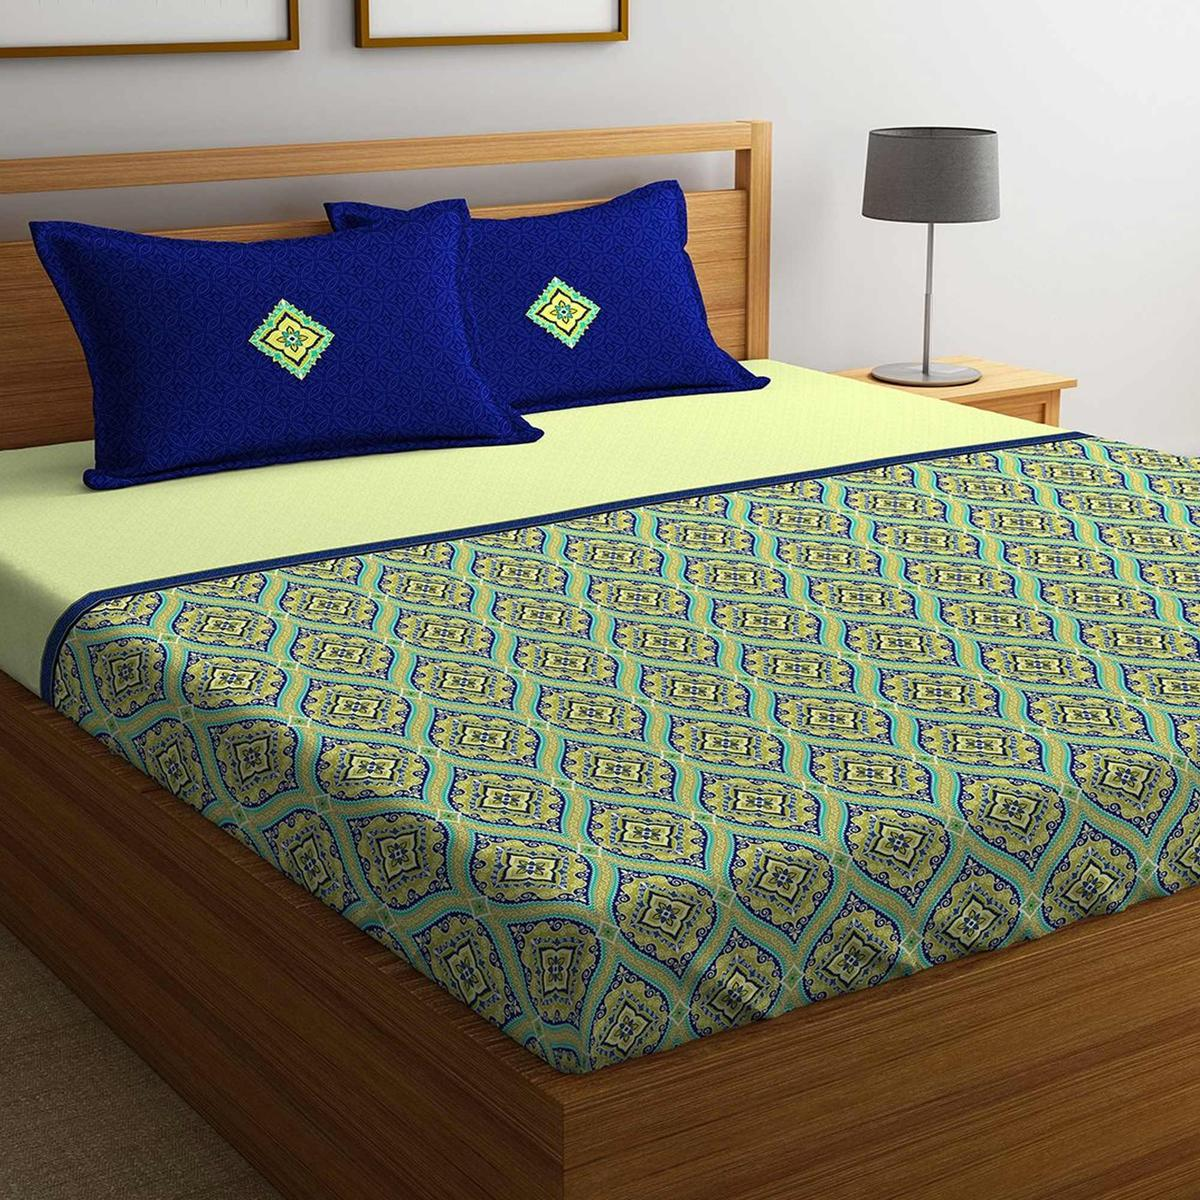 Portico Green-Blue Colored Printed Cotton Double Bedsheet with 2 Pillow Cover